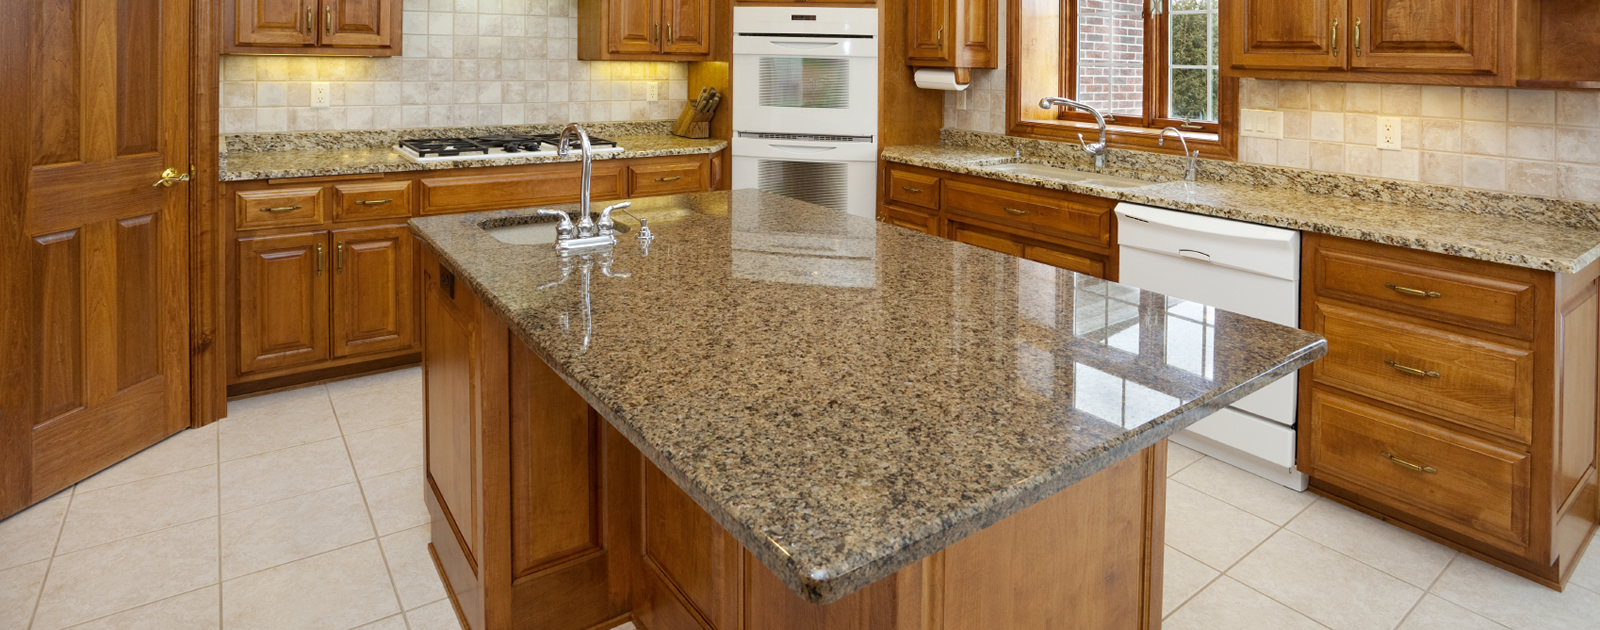 granite kitchen pics photo - 5